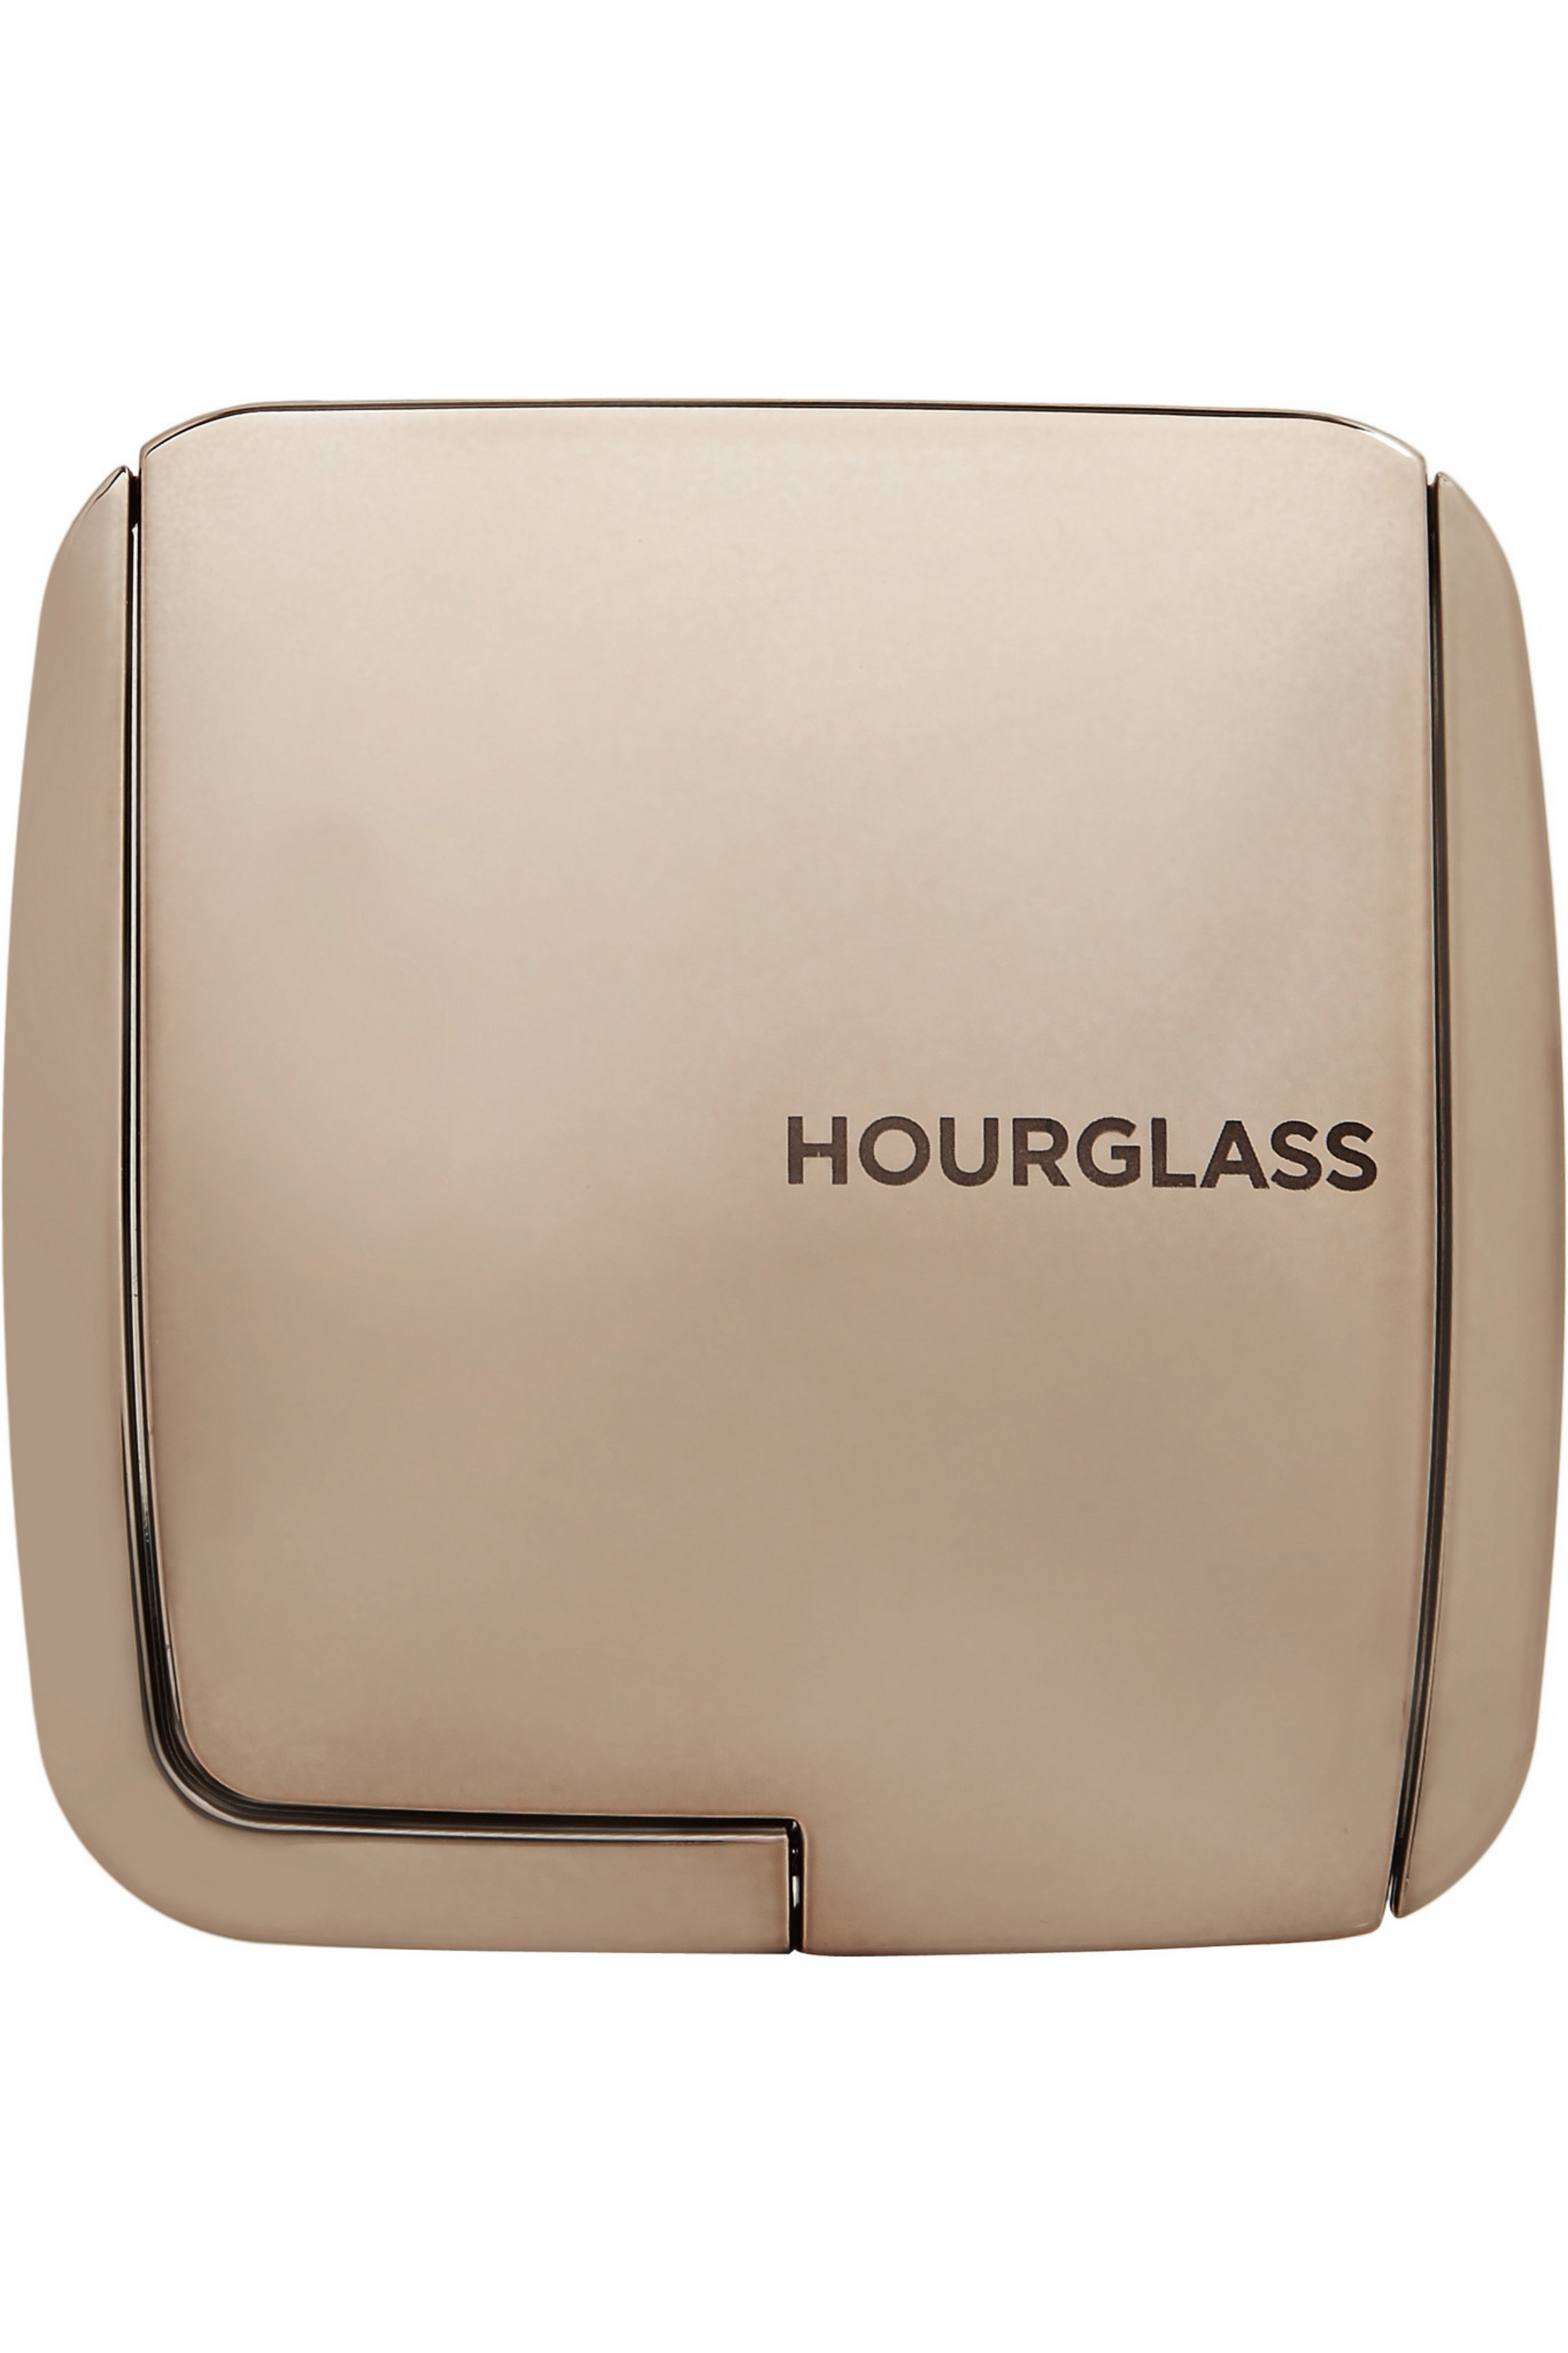 Hourglass Ambient Lighting Blush - Dim Infusion